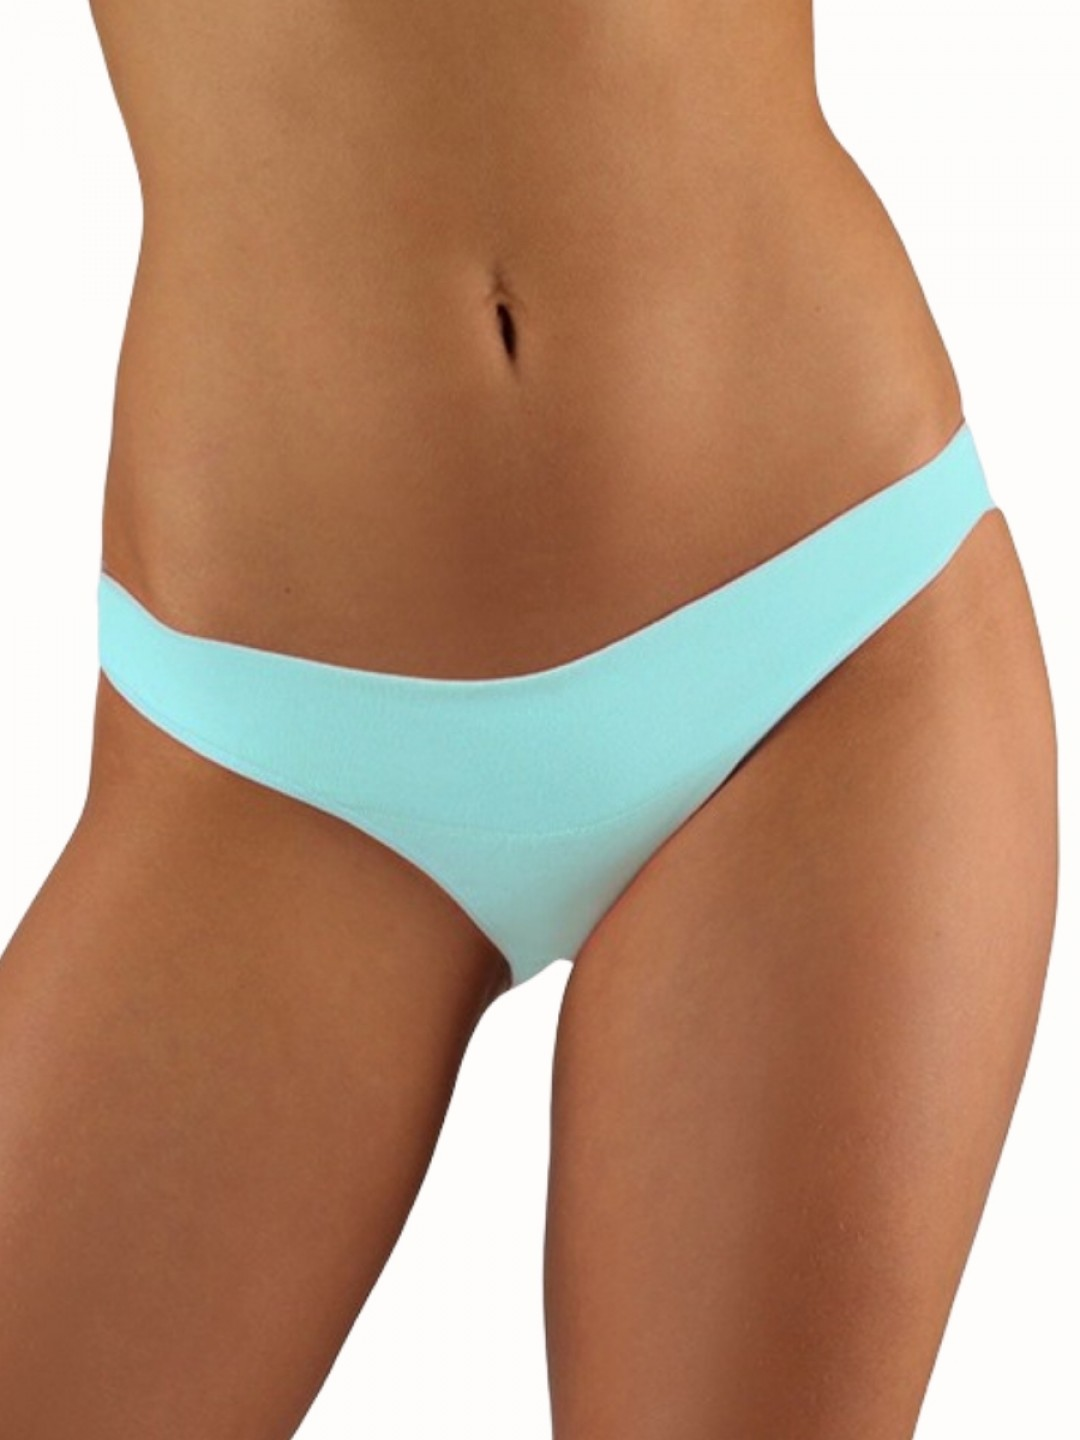 Maternity panties LUX MINI